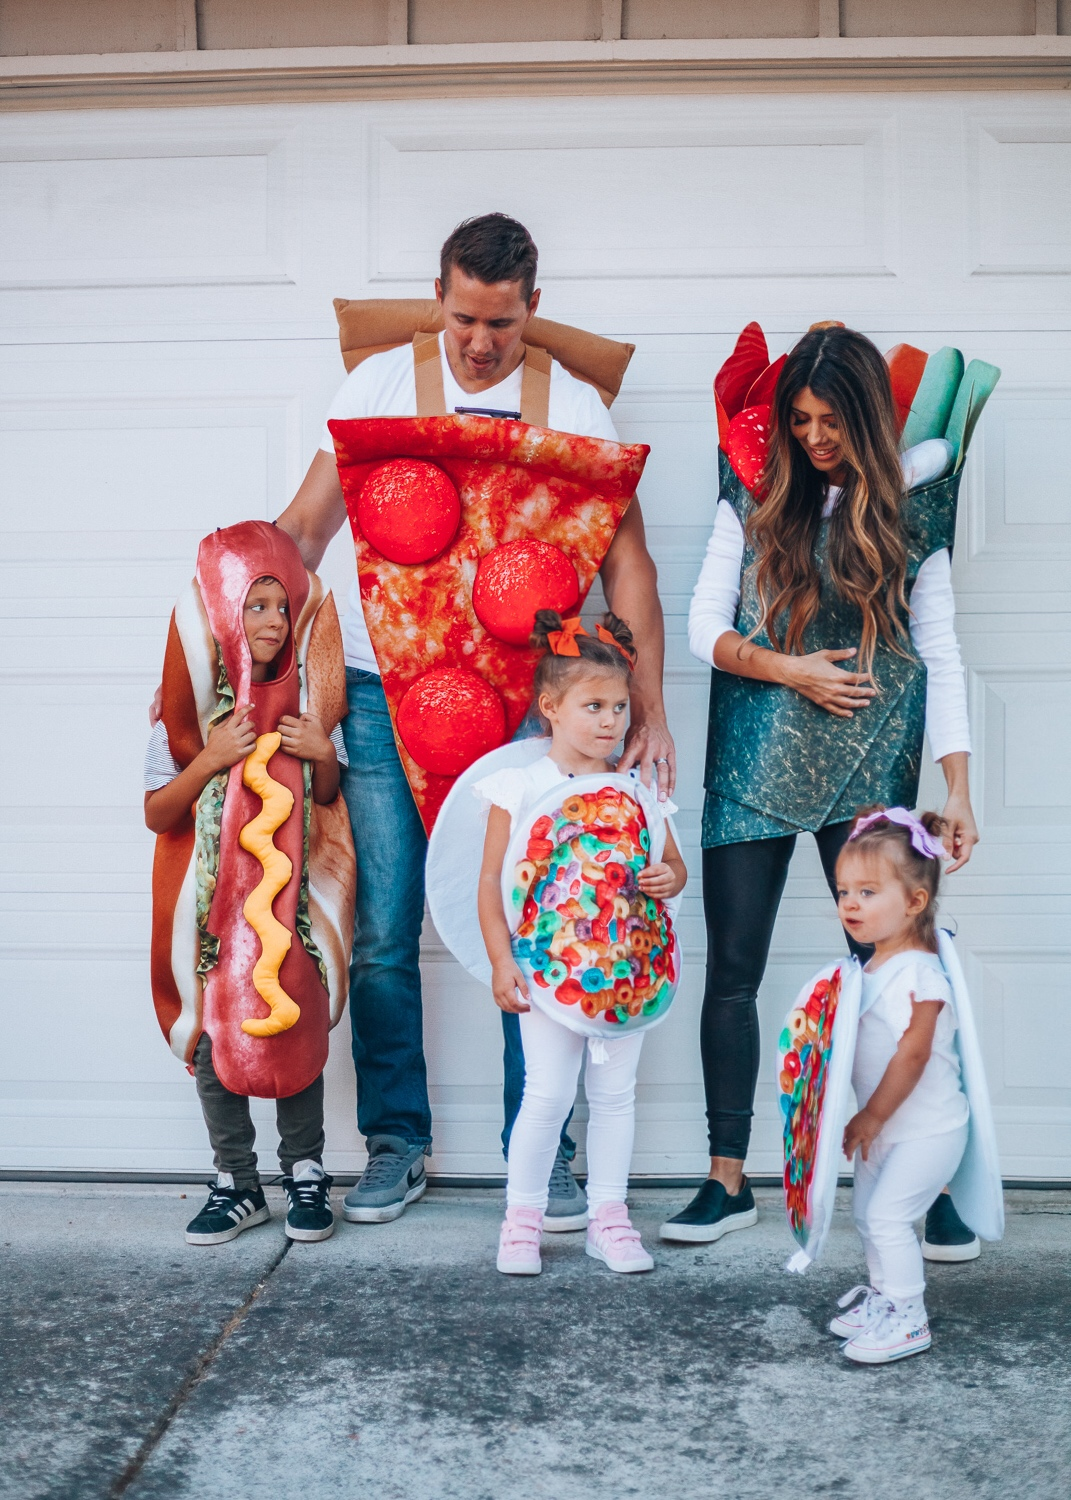 Halloween Costumes Family Of 4.4 Creative Family Halloween Costumes The Girl In The